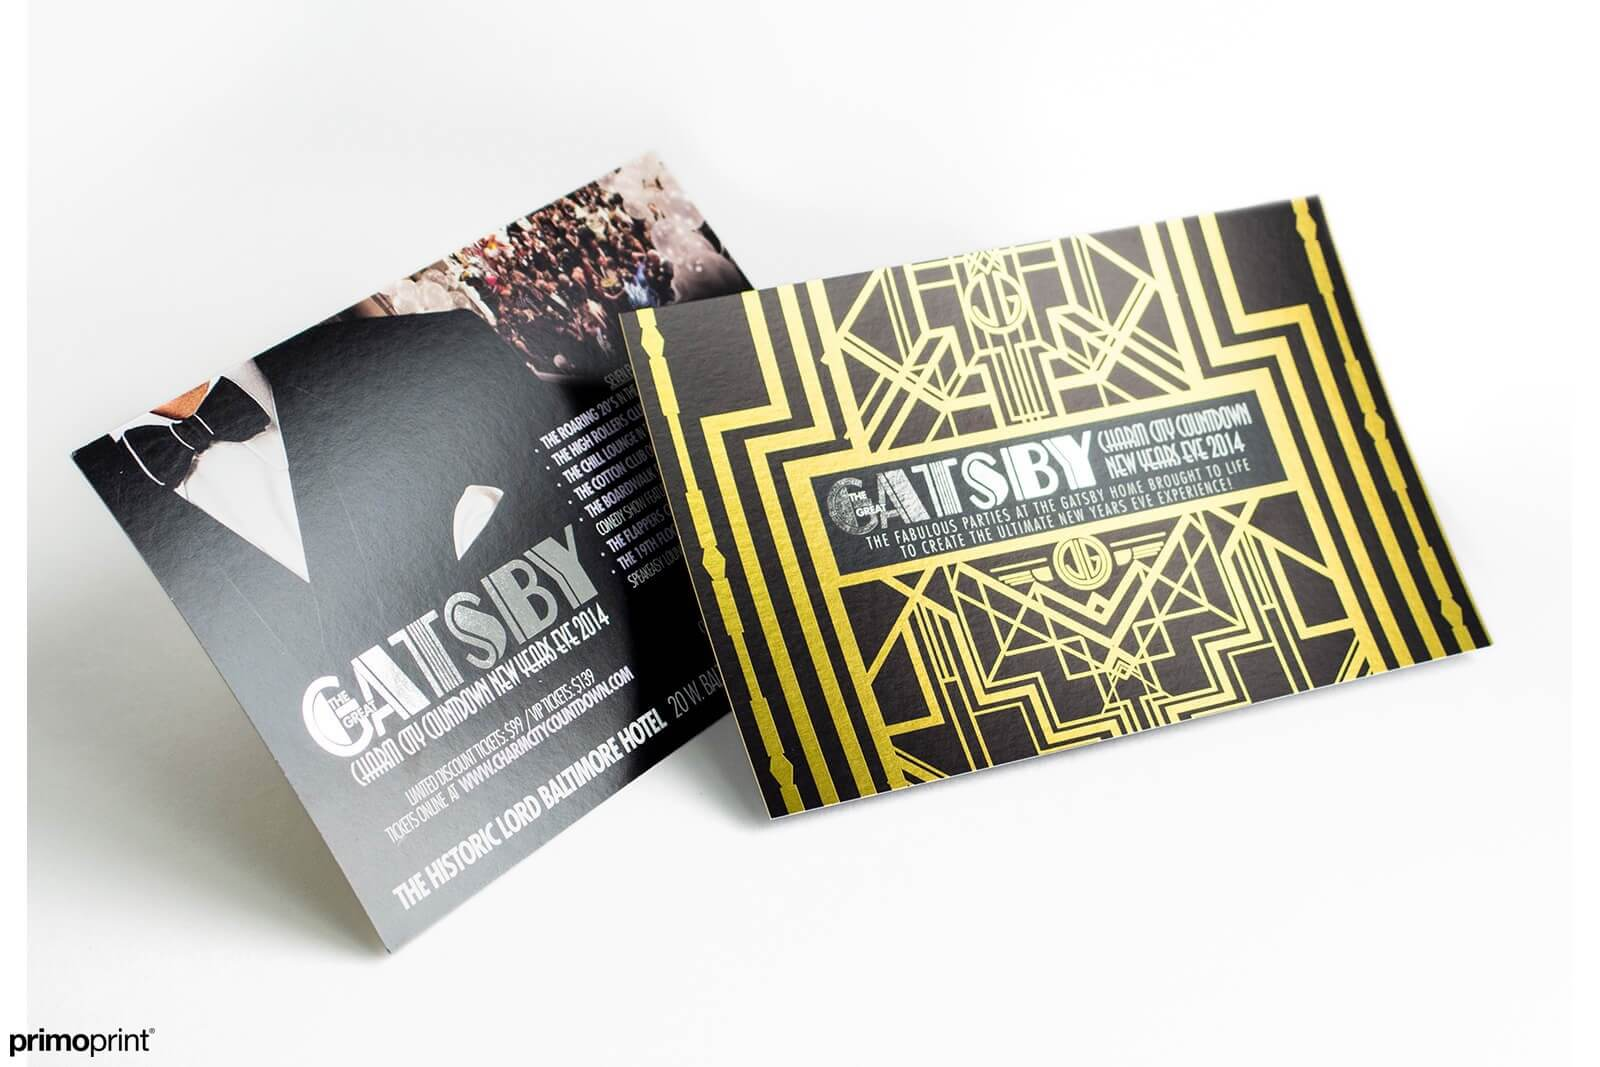 16PT Inline Foil Postcard Printed by Primoprint